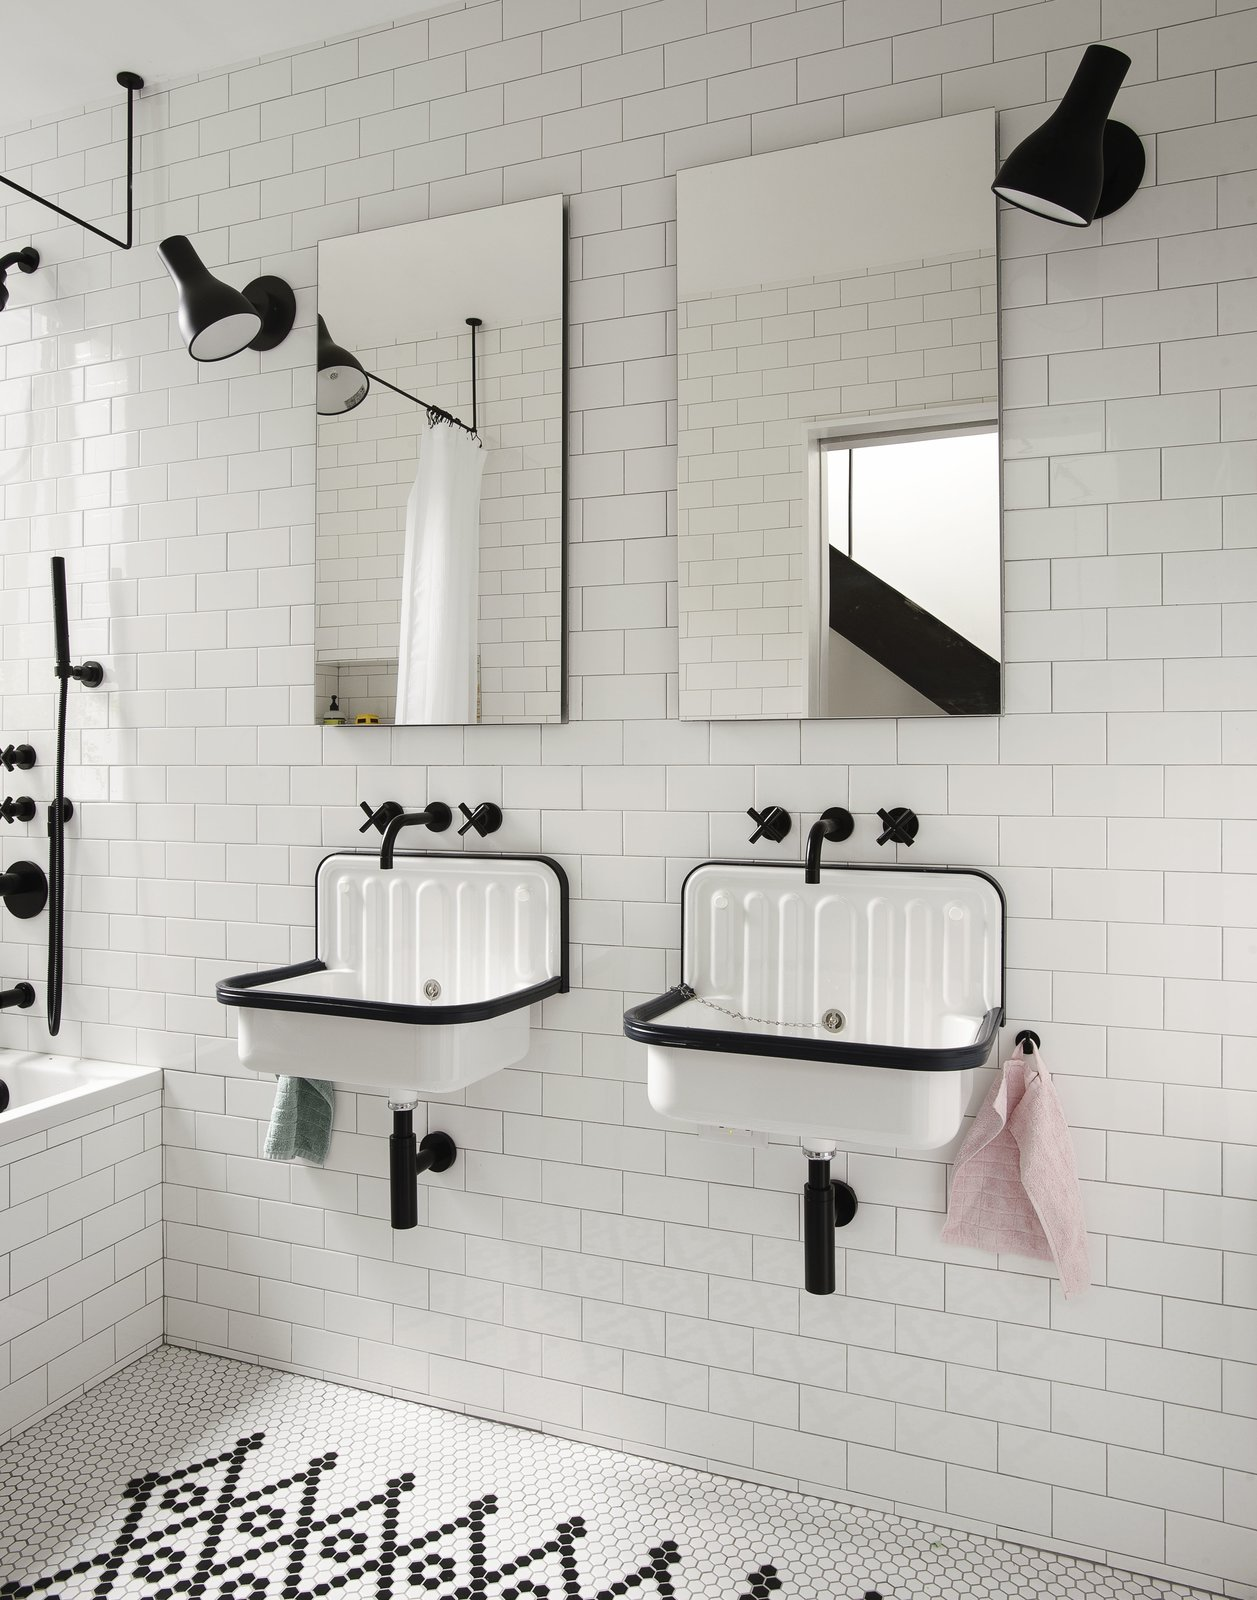 Bath, Ceramic Tile, Wall Mount, Drop In, Ceiling, Ceramic Tile, One Piece, and Wall Kids' Bathroom  Bath Drop In Wall Ceramic Tile Photos from Little House. Big City.